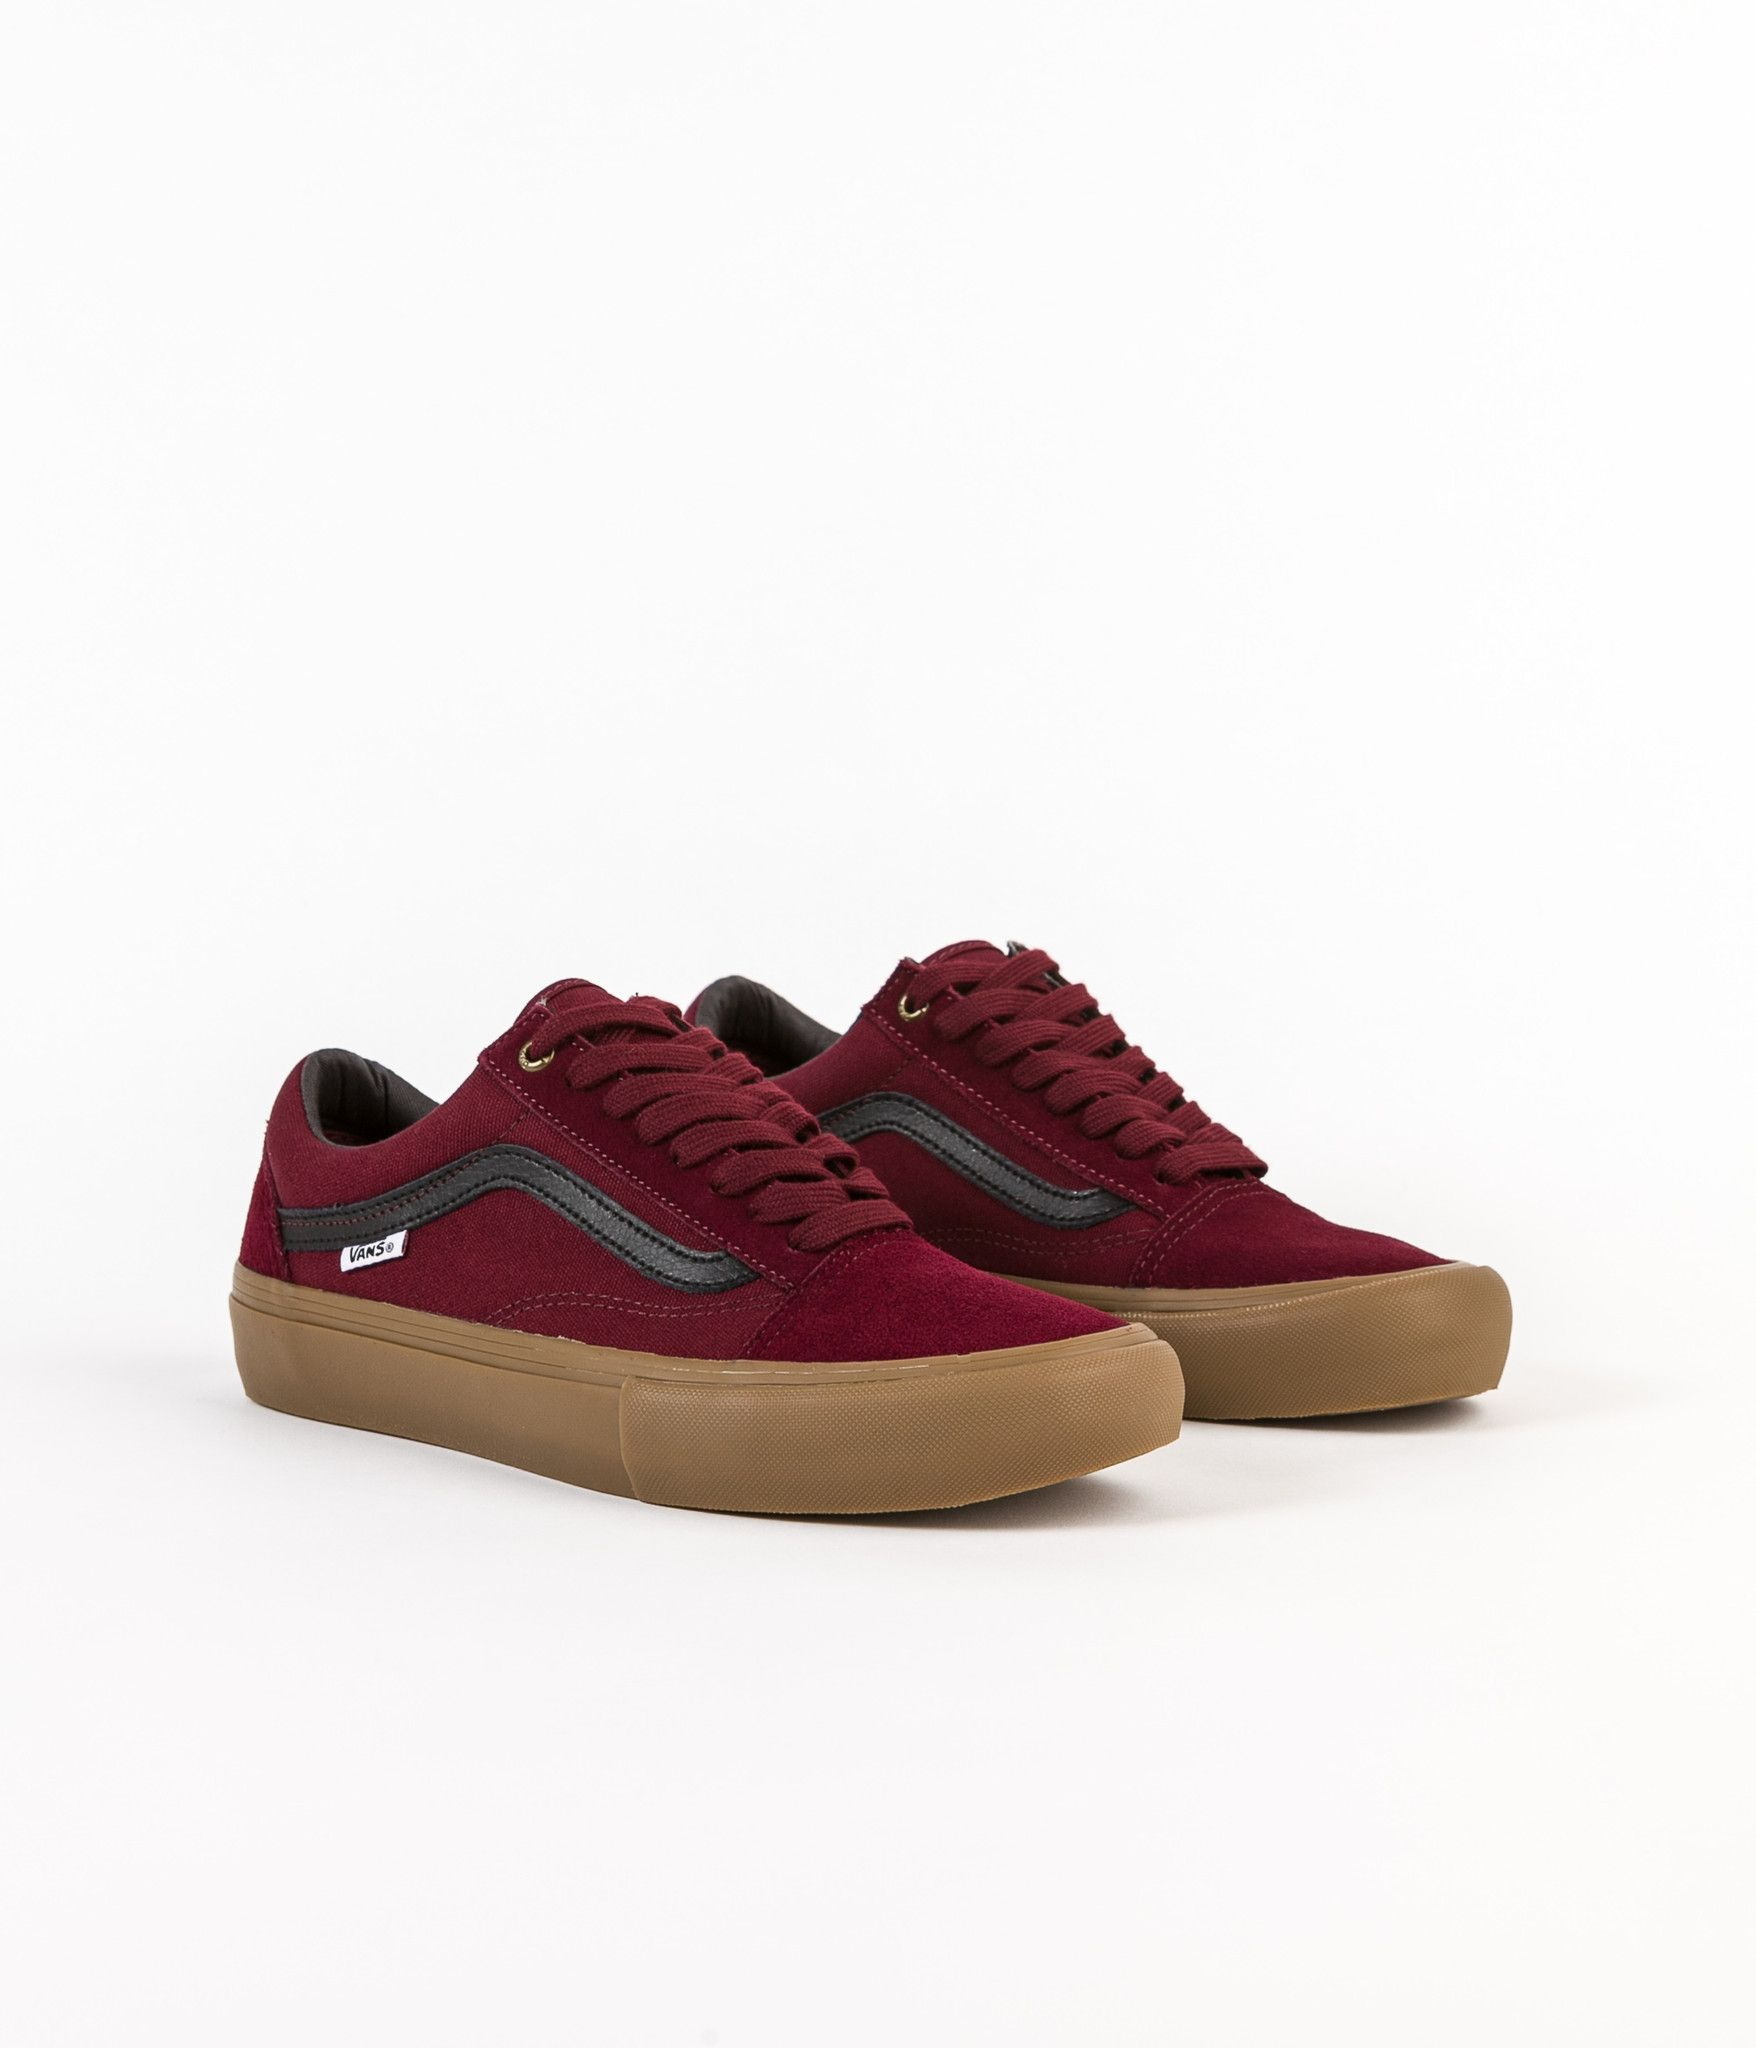 Dominguear Vans Gum Para Black Port Skool Pro Old Shoes 8qTA8